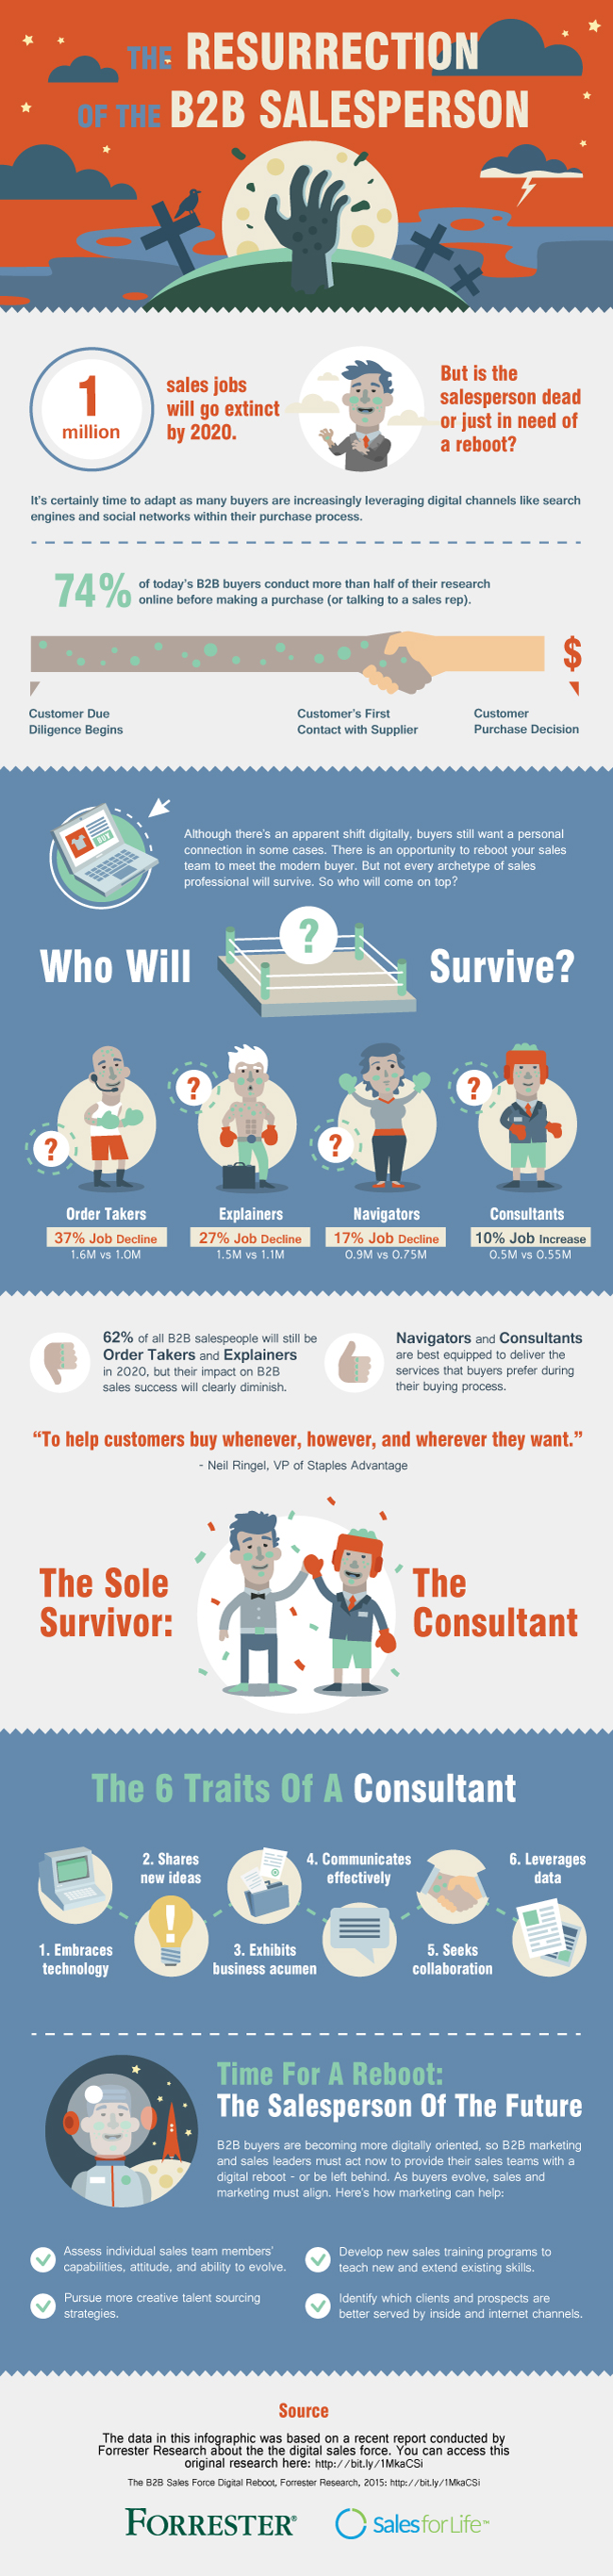 The Resurrection of The B2B Salesperson